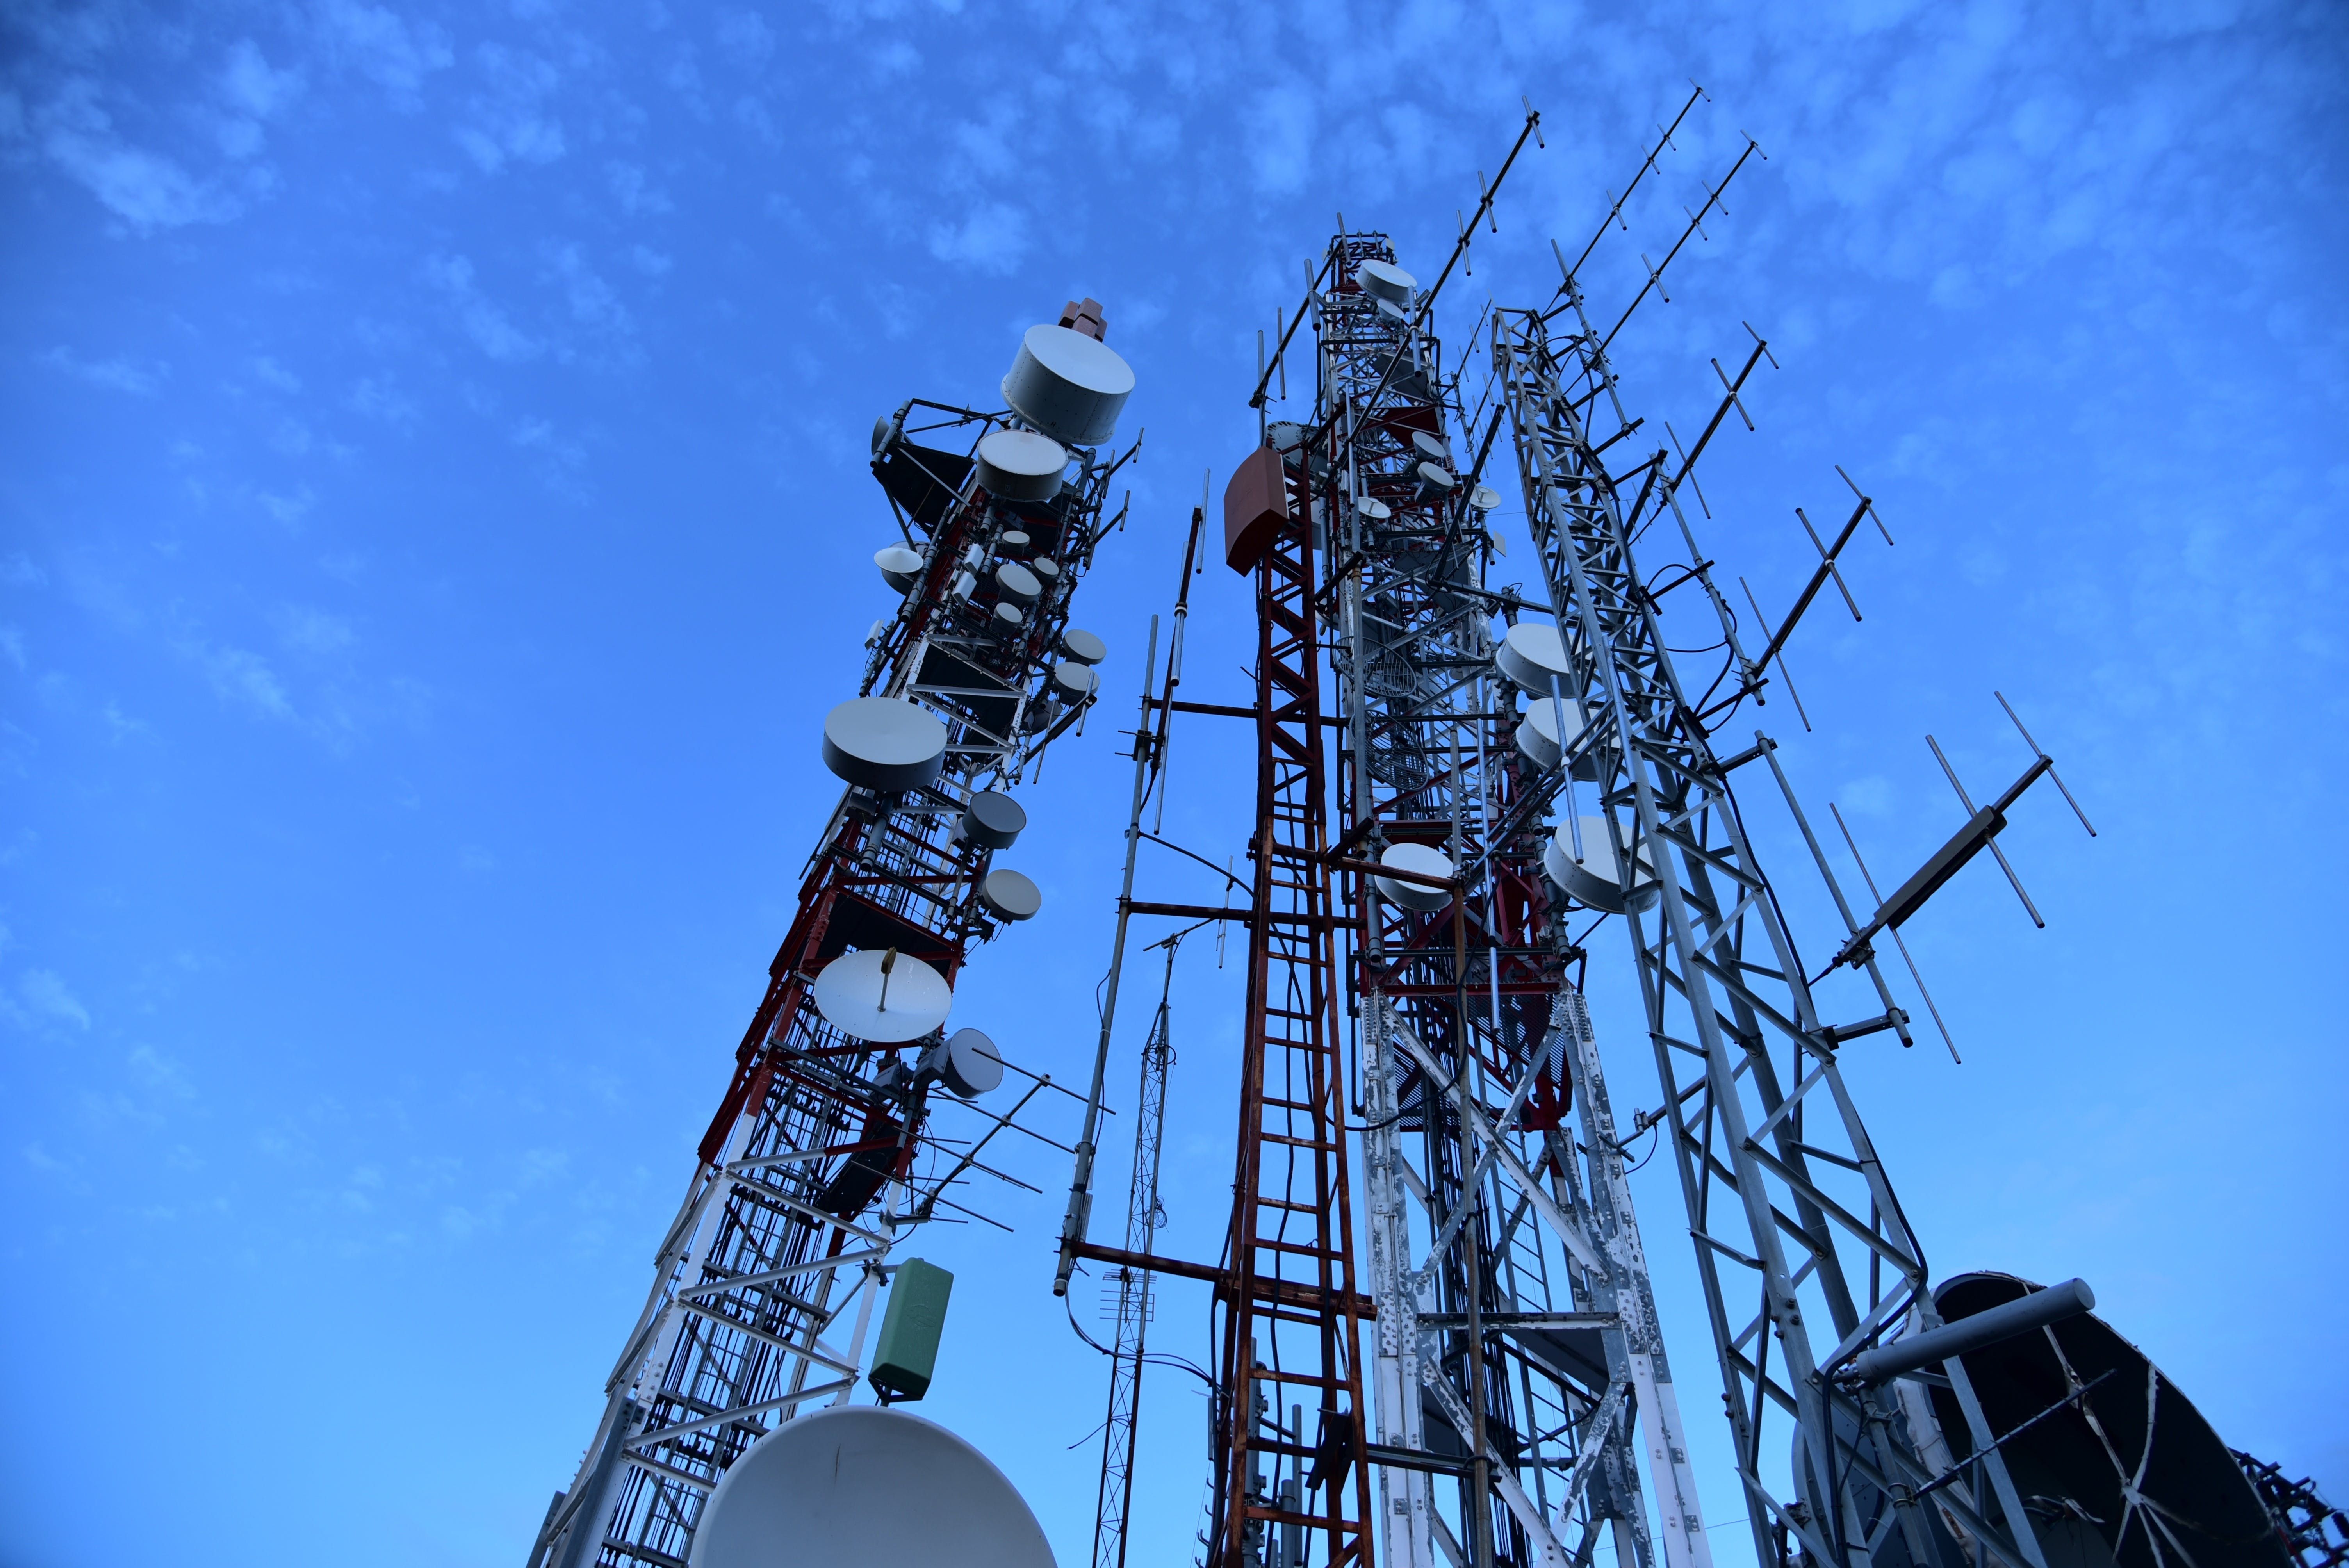 antenna, cell tower, cellphone masts